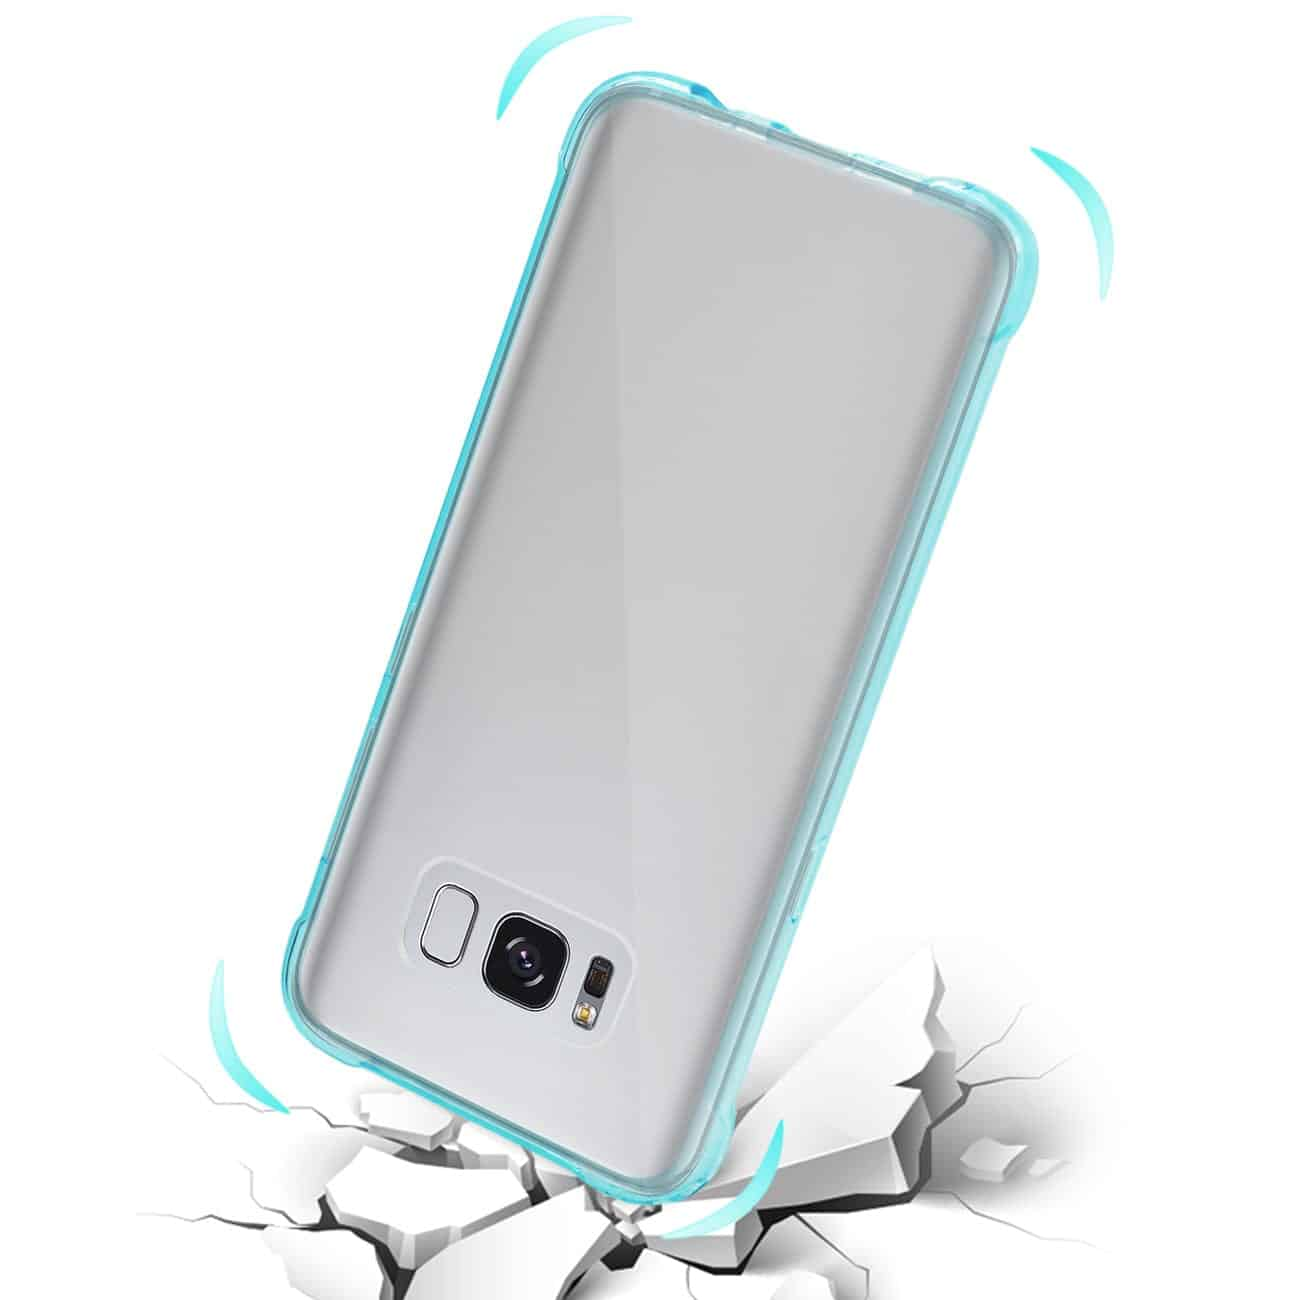 Samsung Galaxy S8 Edge/ S8 Plus Clear Bumper Case With Air Cushion Protection In Clear Navy